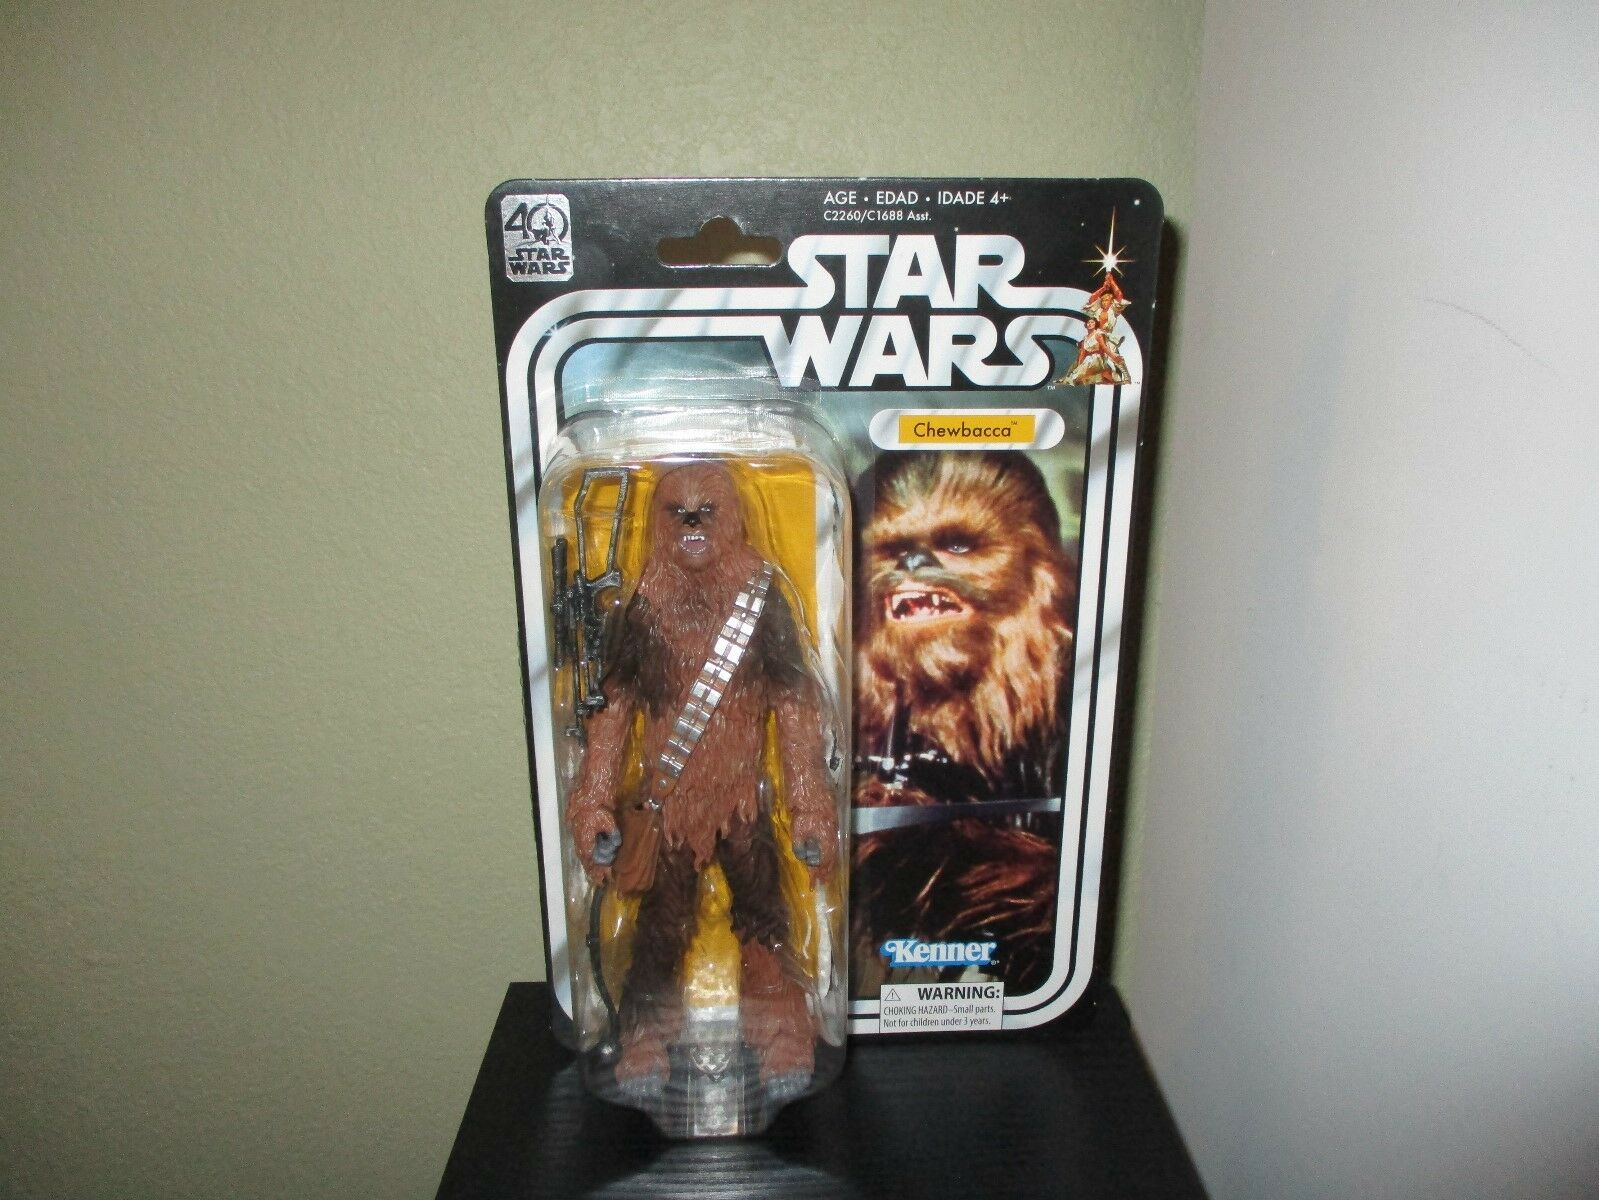 Star Wars 40th Anniversary Chewbacca 6 inch New     Never been opened   d843f4